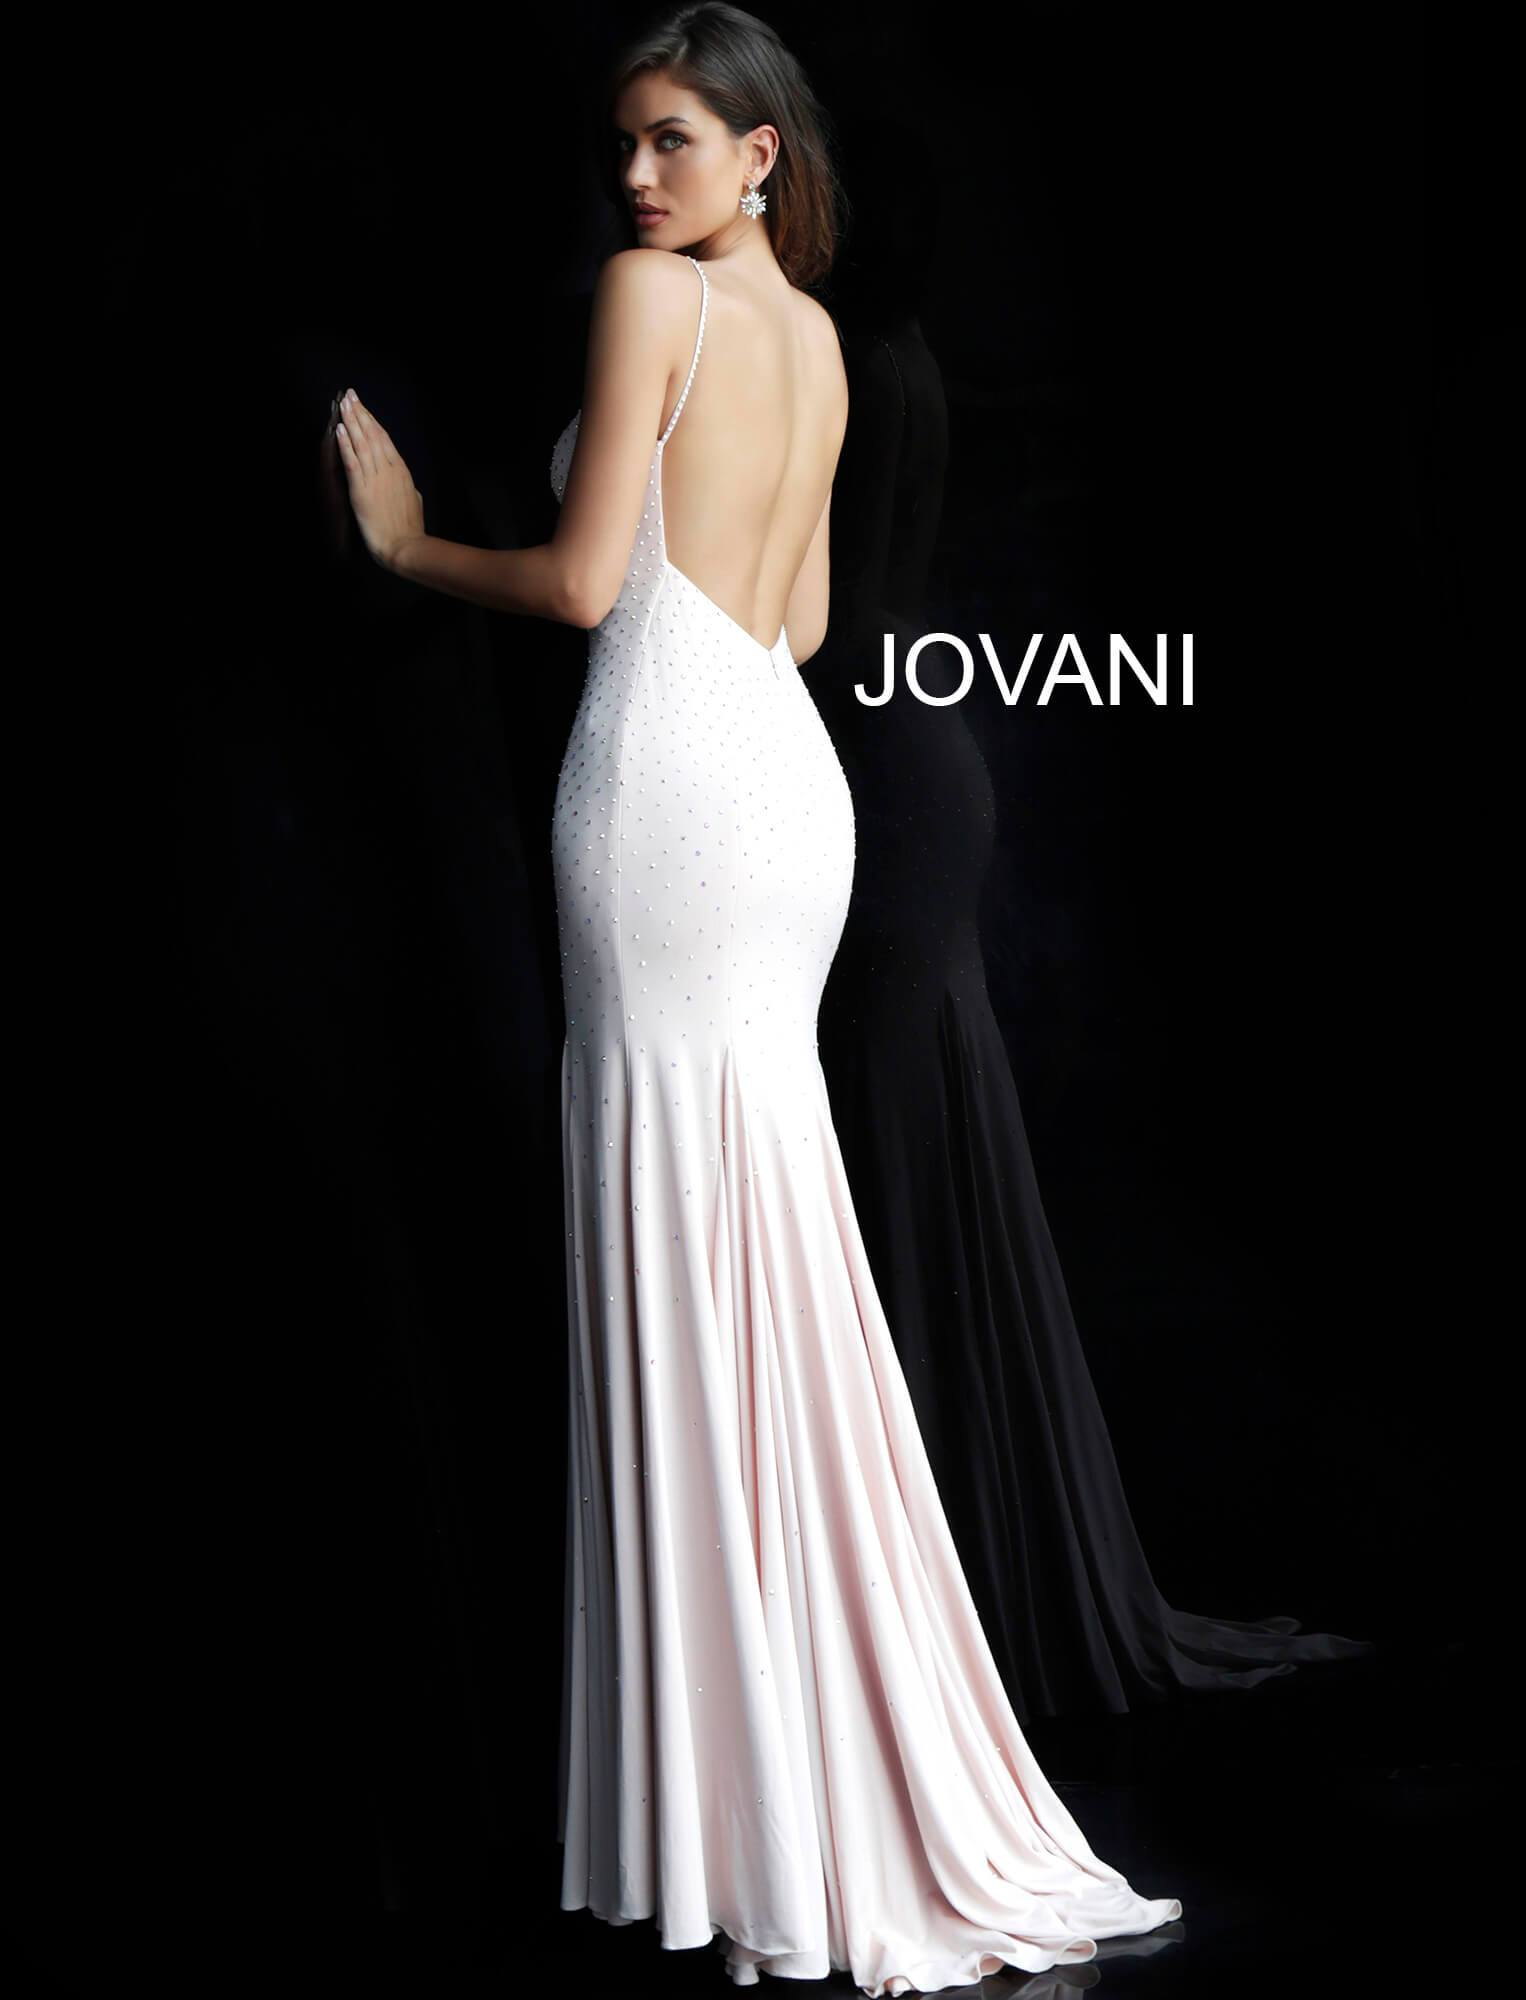 Jovani Backless Embellished Jersey Gown - Gissings Boutique